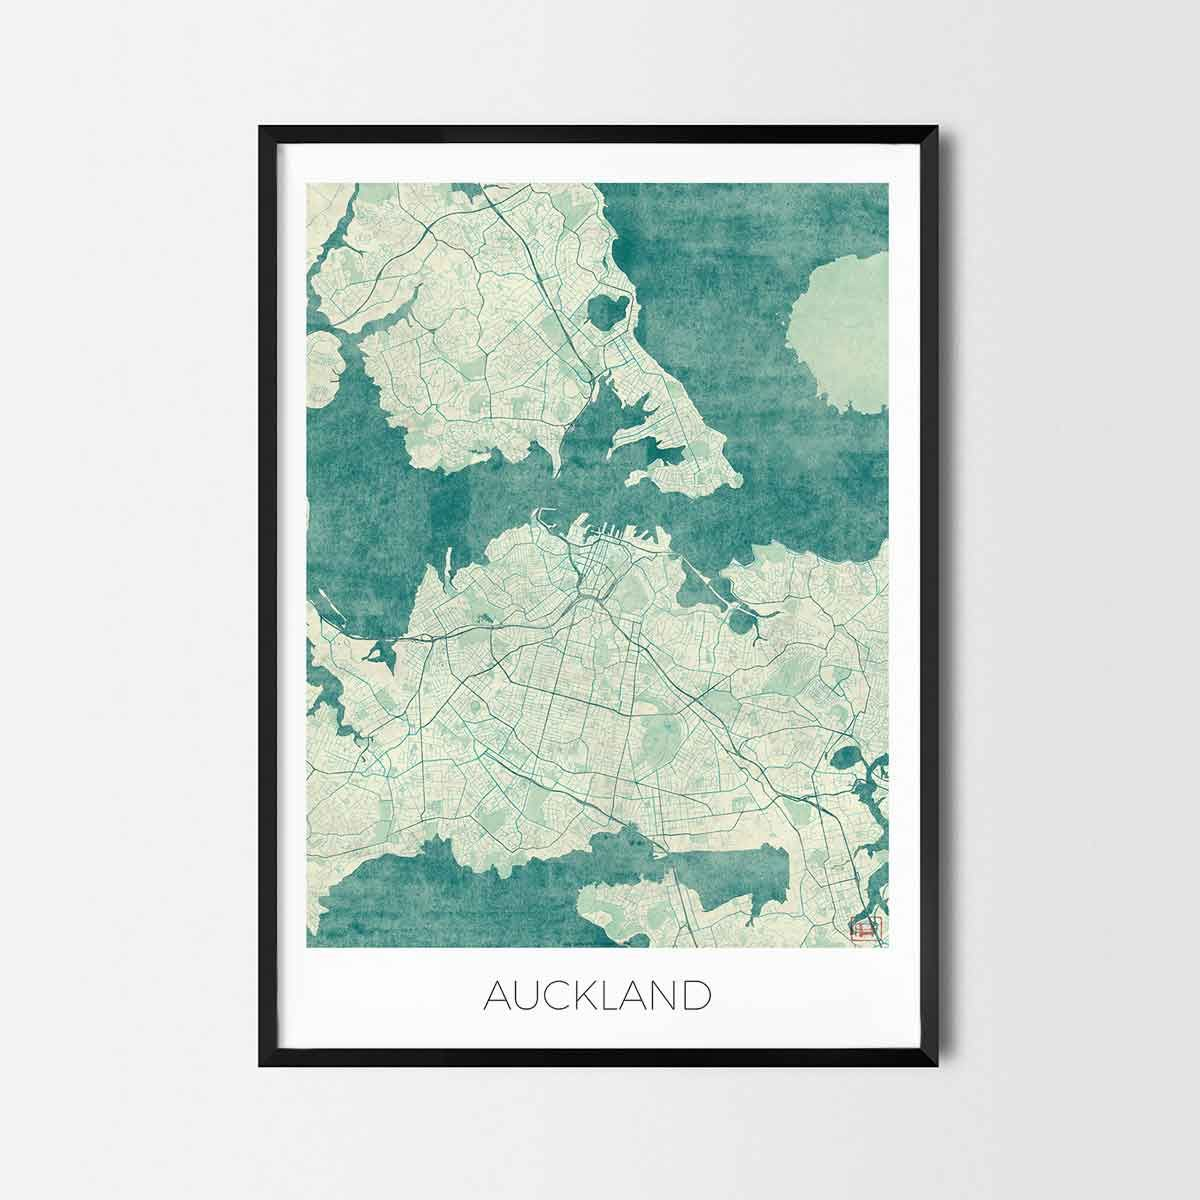 Auckland art posters - City Art Map Posters and Prints | Art posters